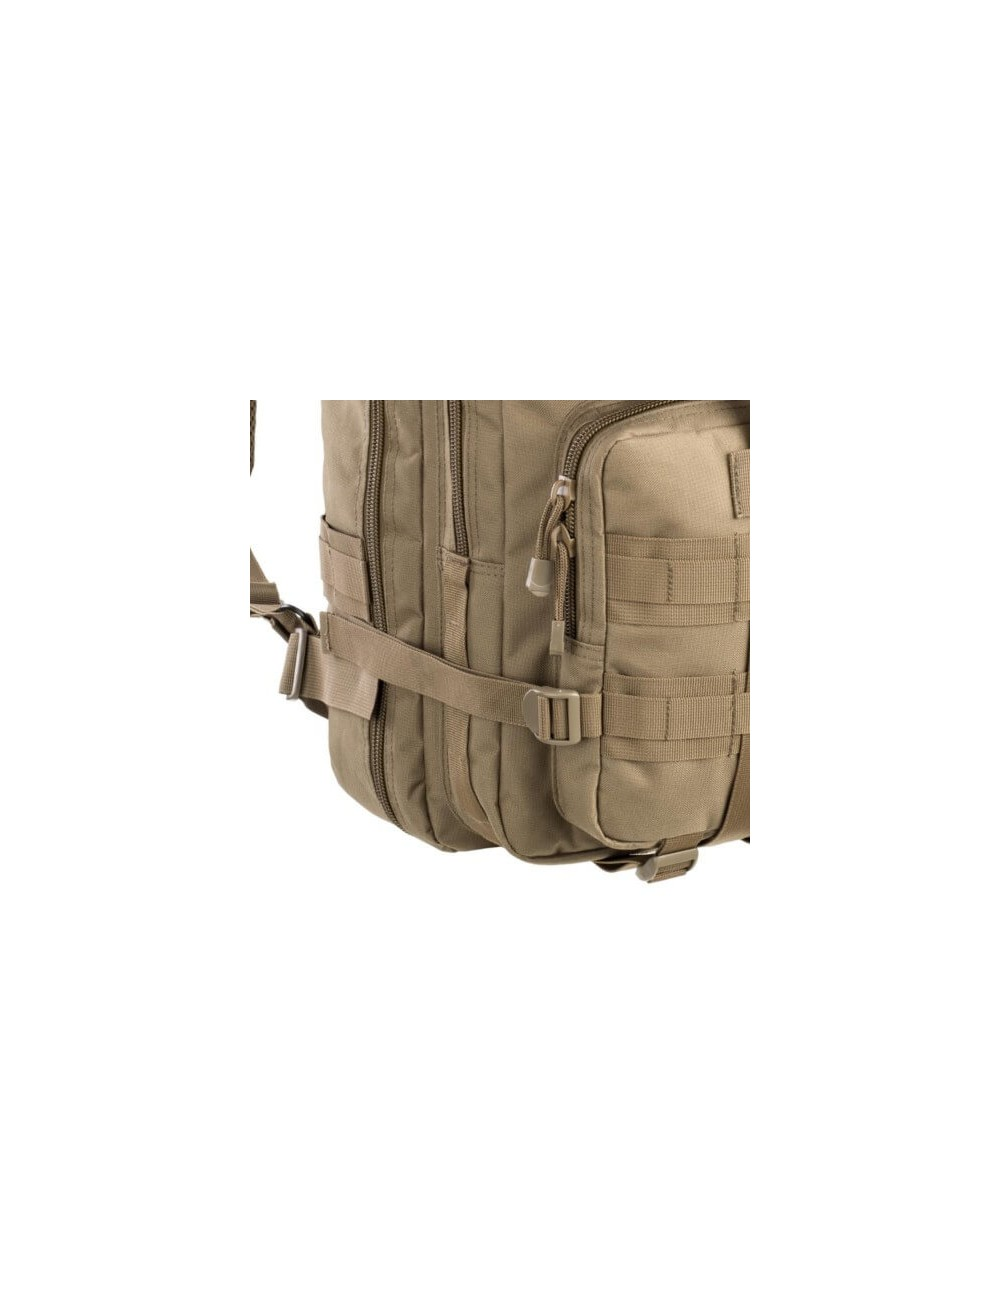 Defcon 5 rugzak Tactical backpack - Hydro compatible - 40 liter Coyote